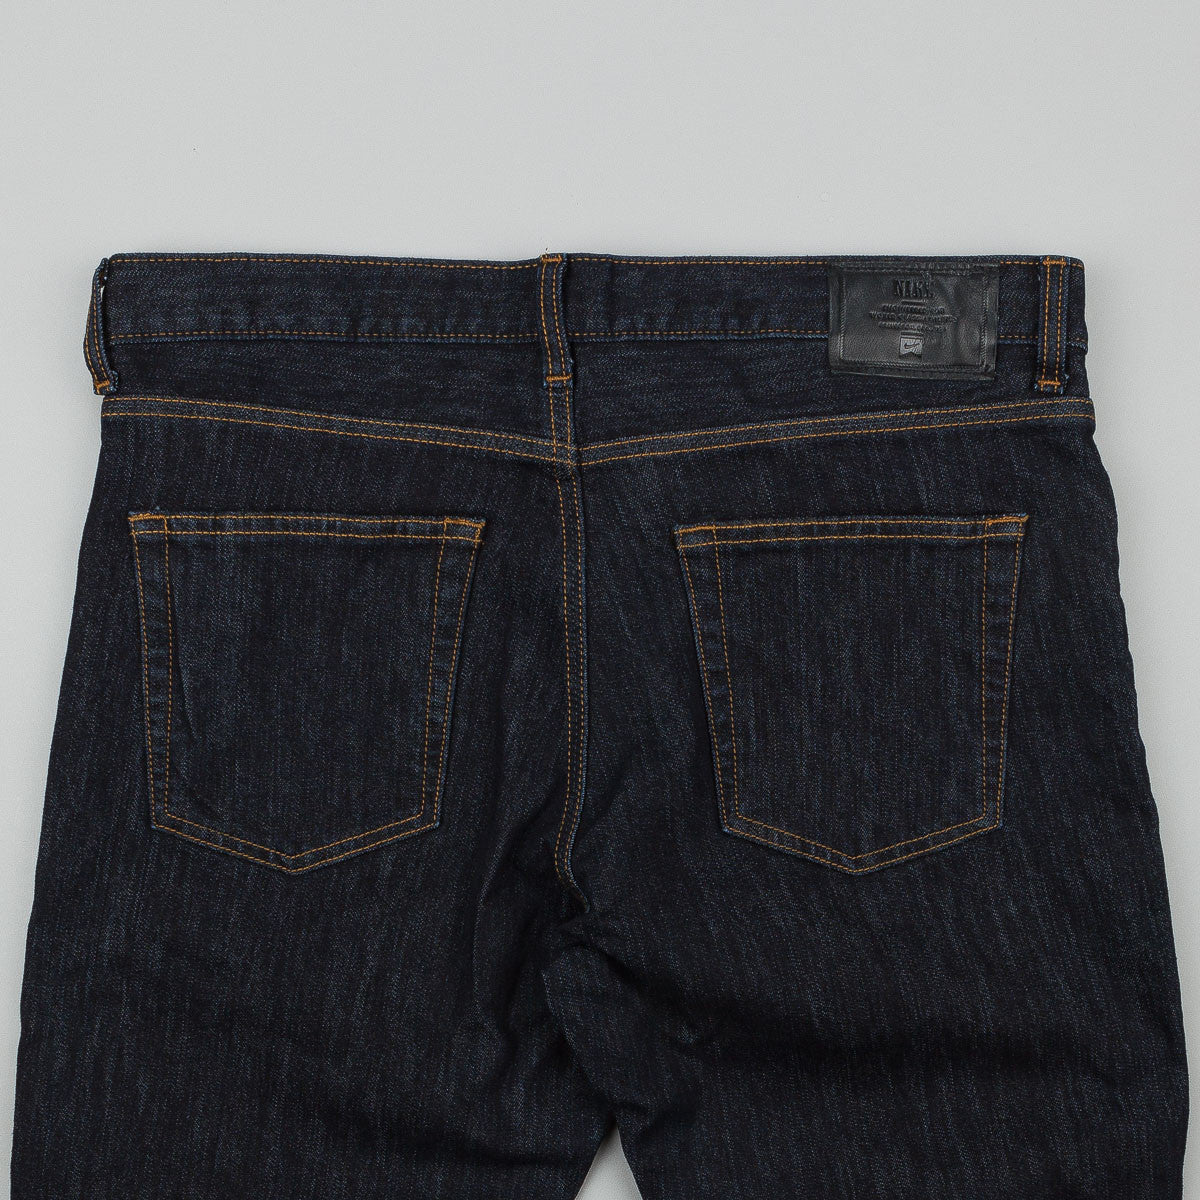 Nike SB P-Rod Signature 5 Pocket Denim Jeans - Indigo